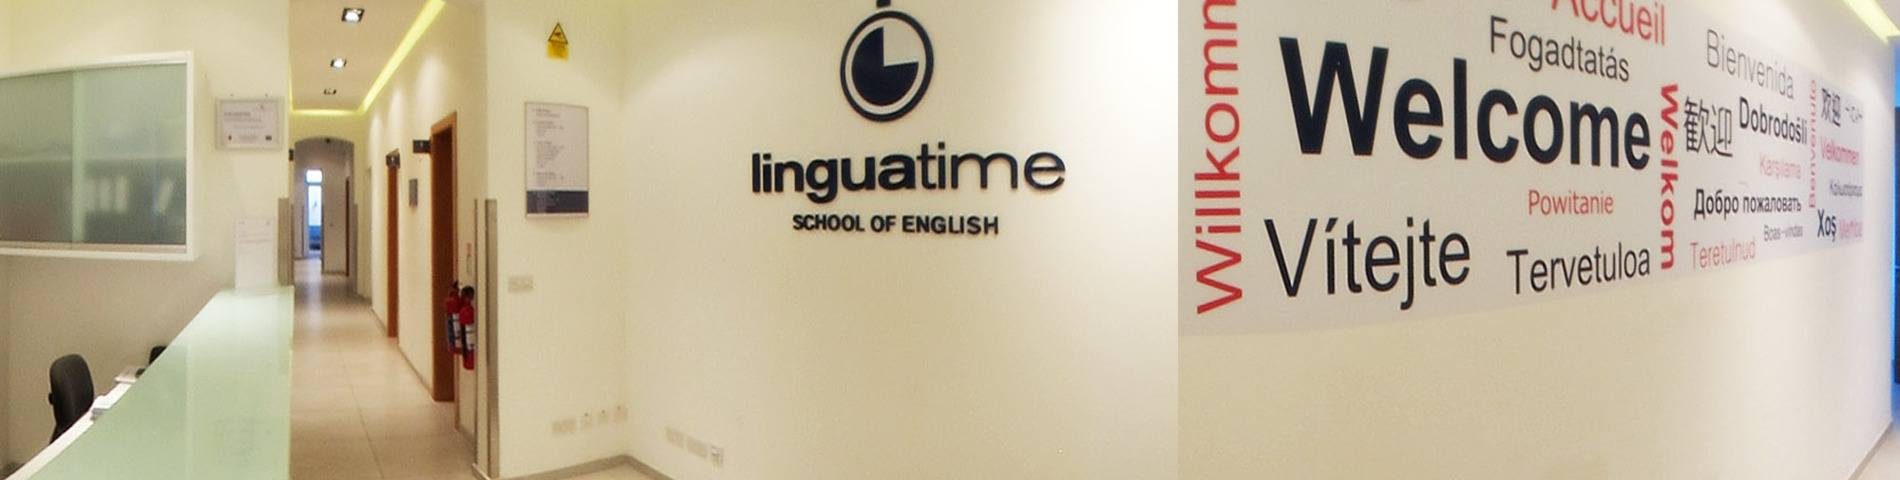 Linguatime School of English photo 1